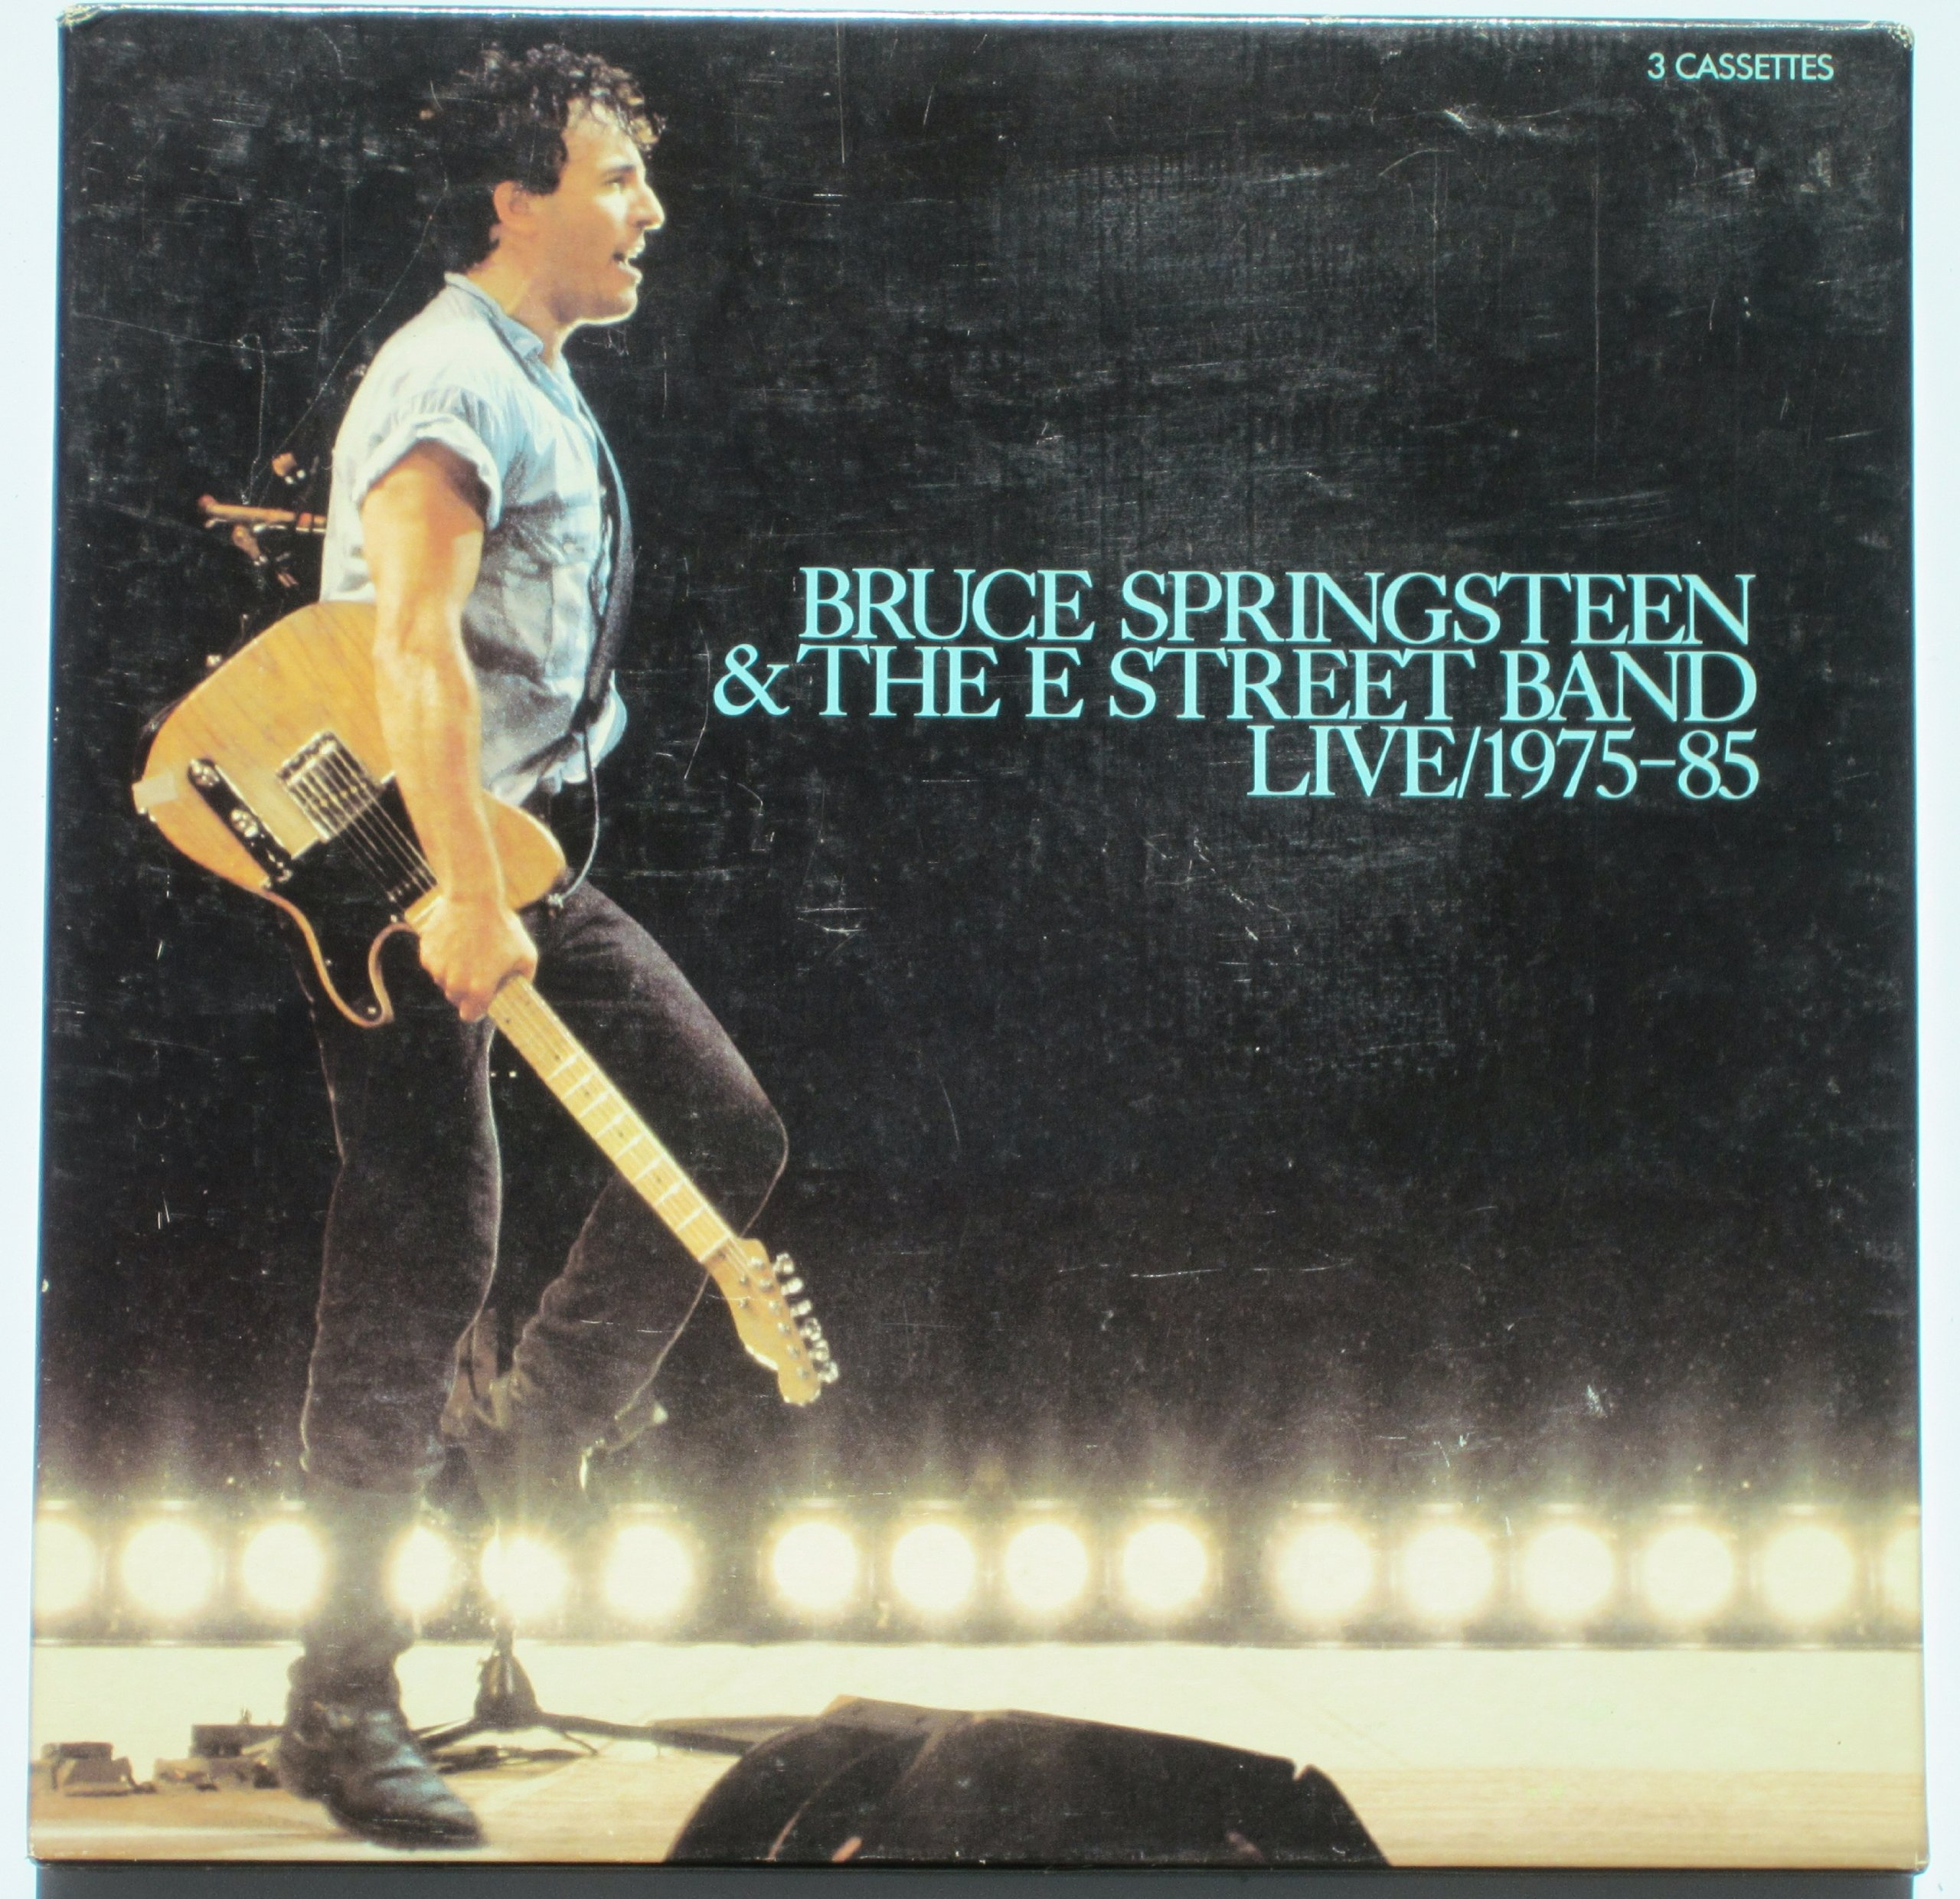 Bruce Springsteen & the E Street Band Live/1975-85